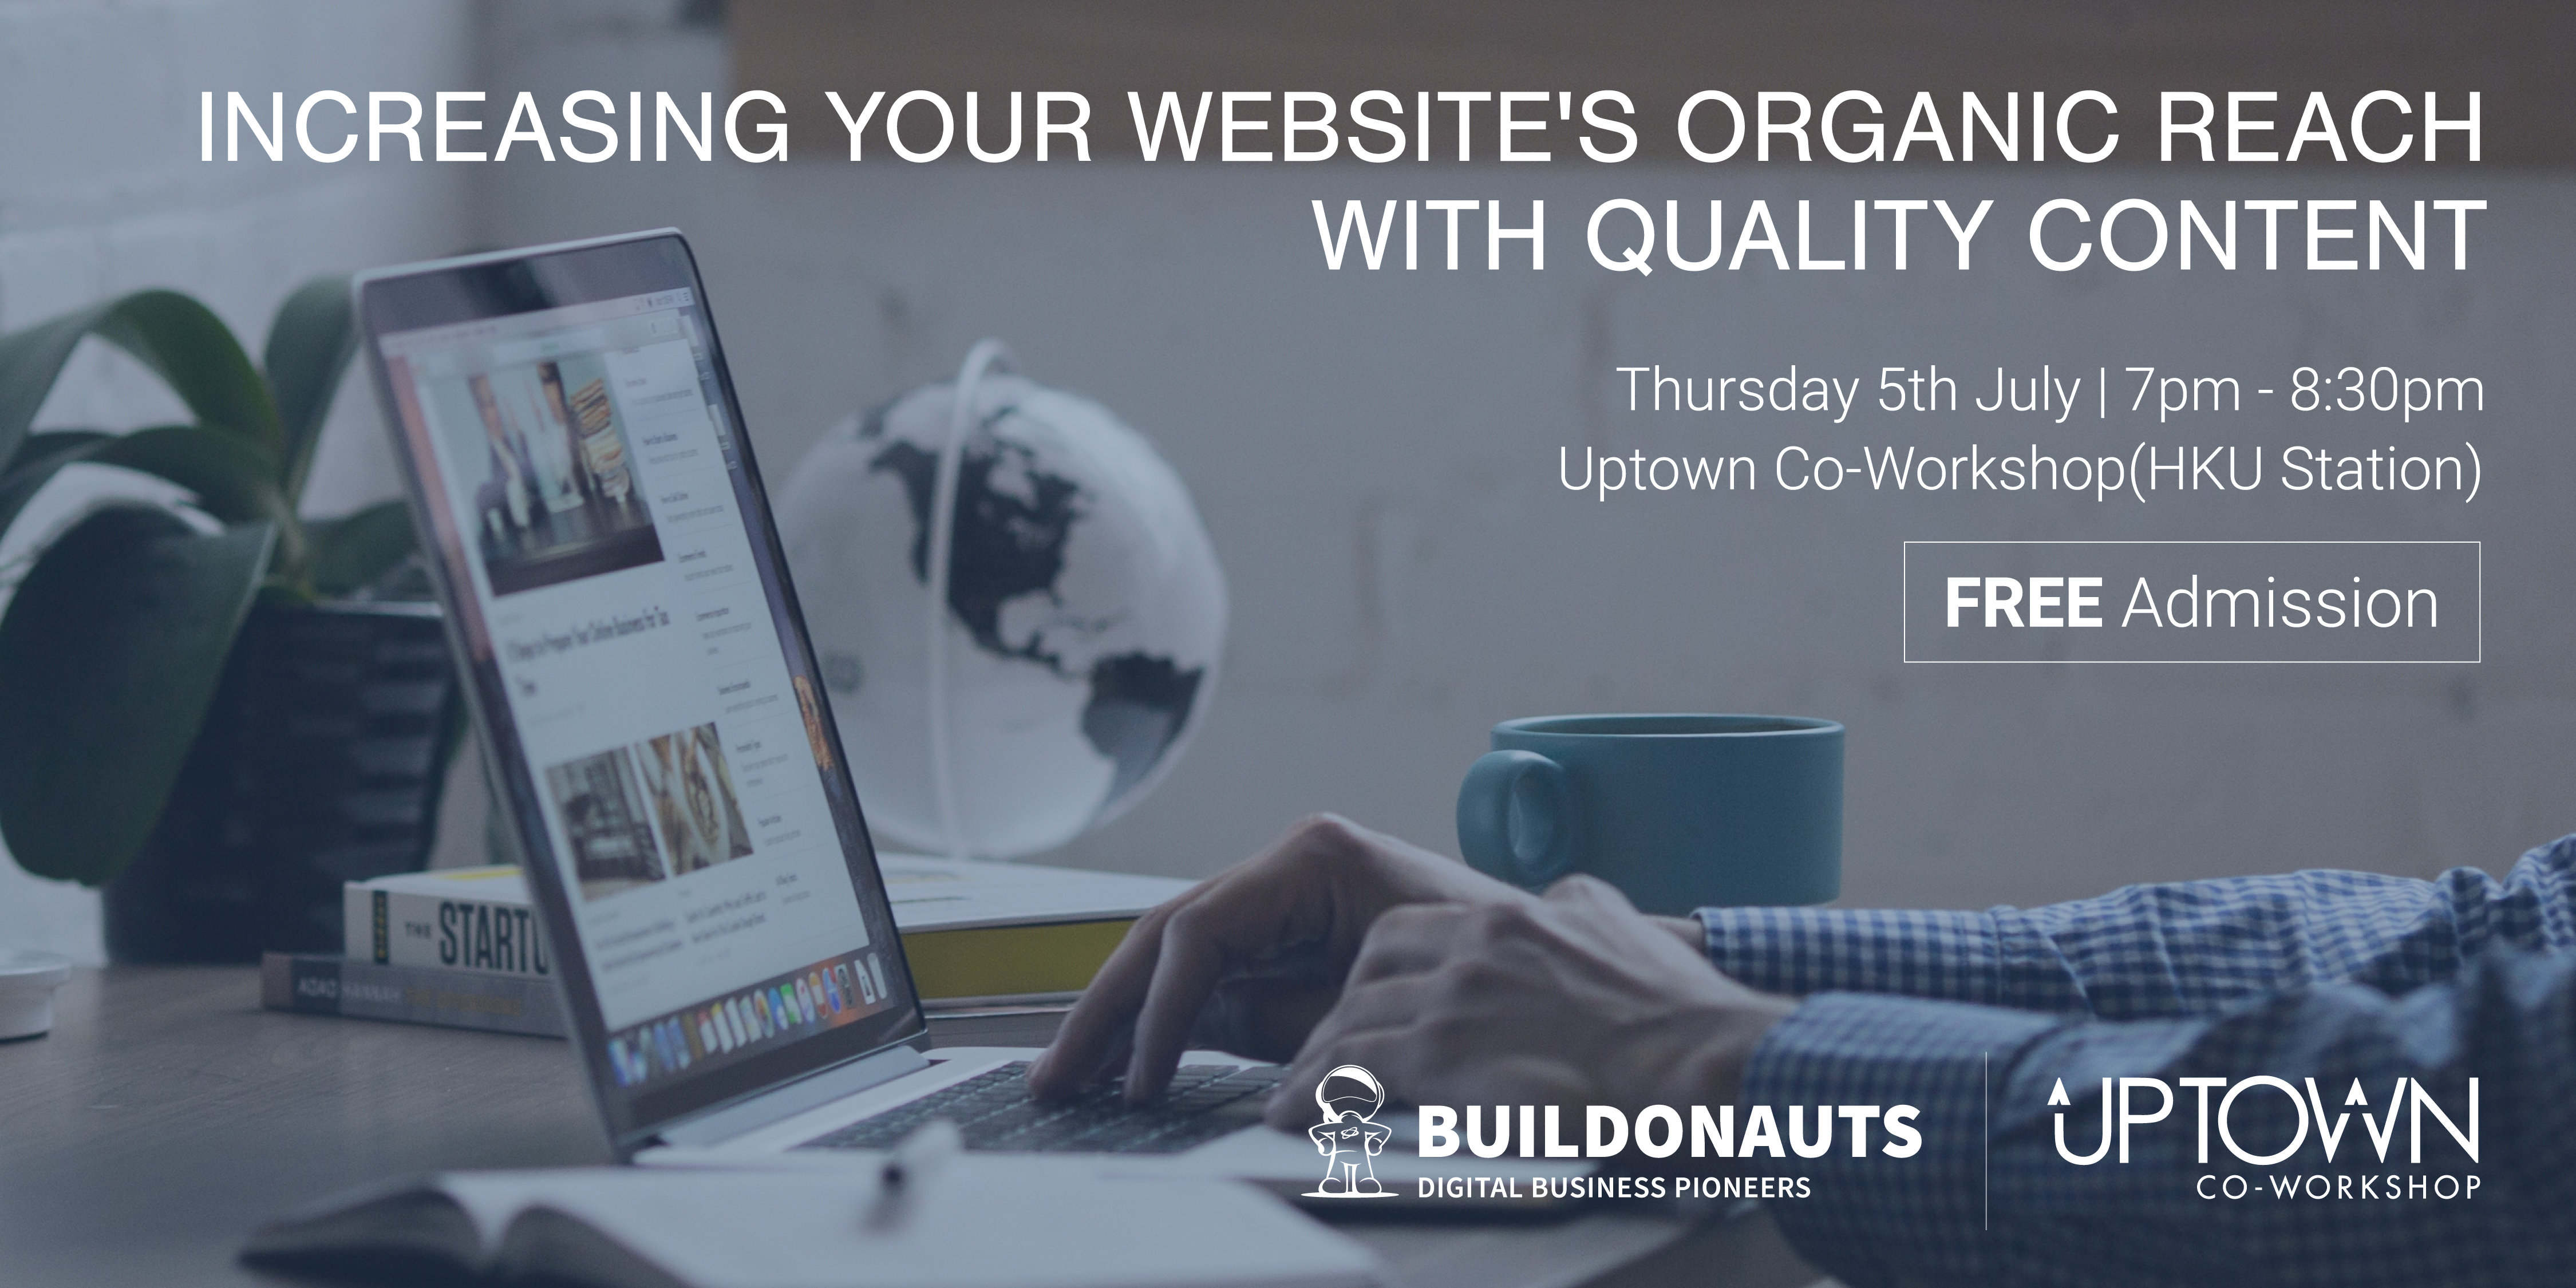 Increasing Your Website's Organic Reach With Quality Content